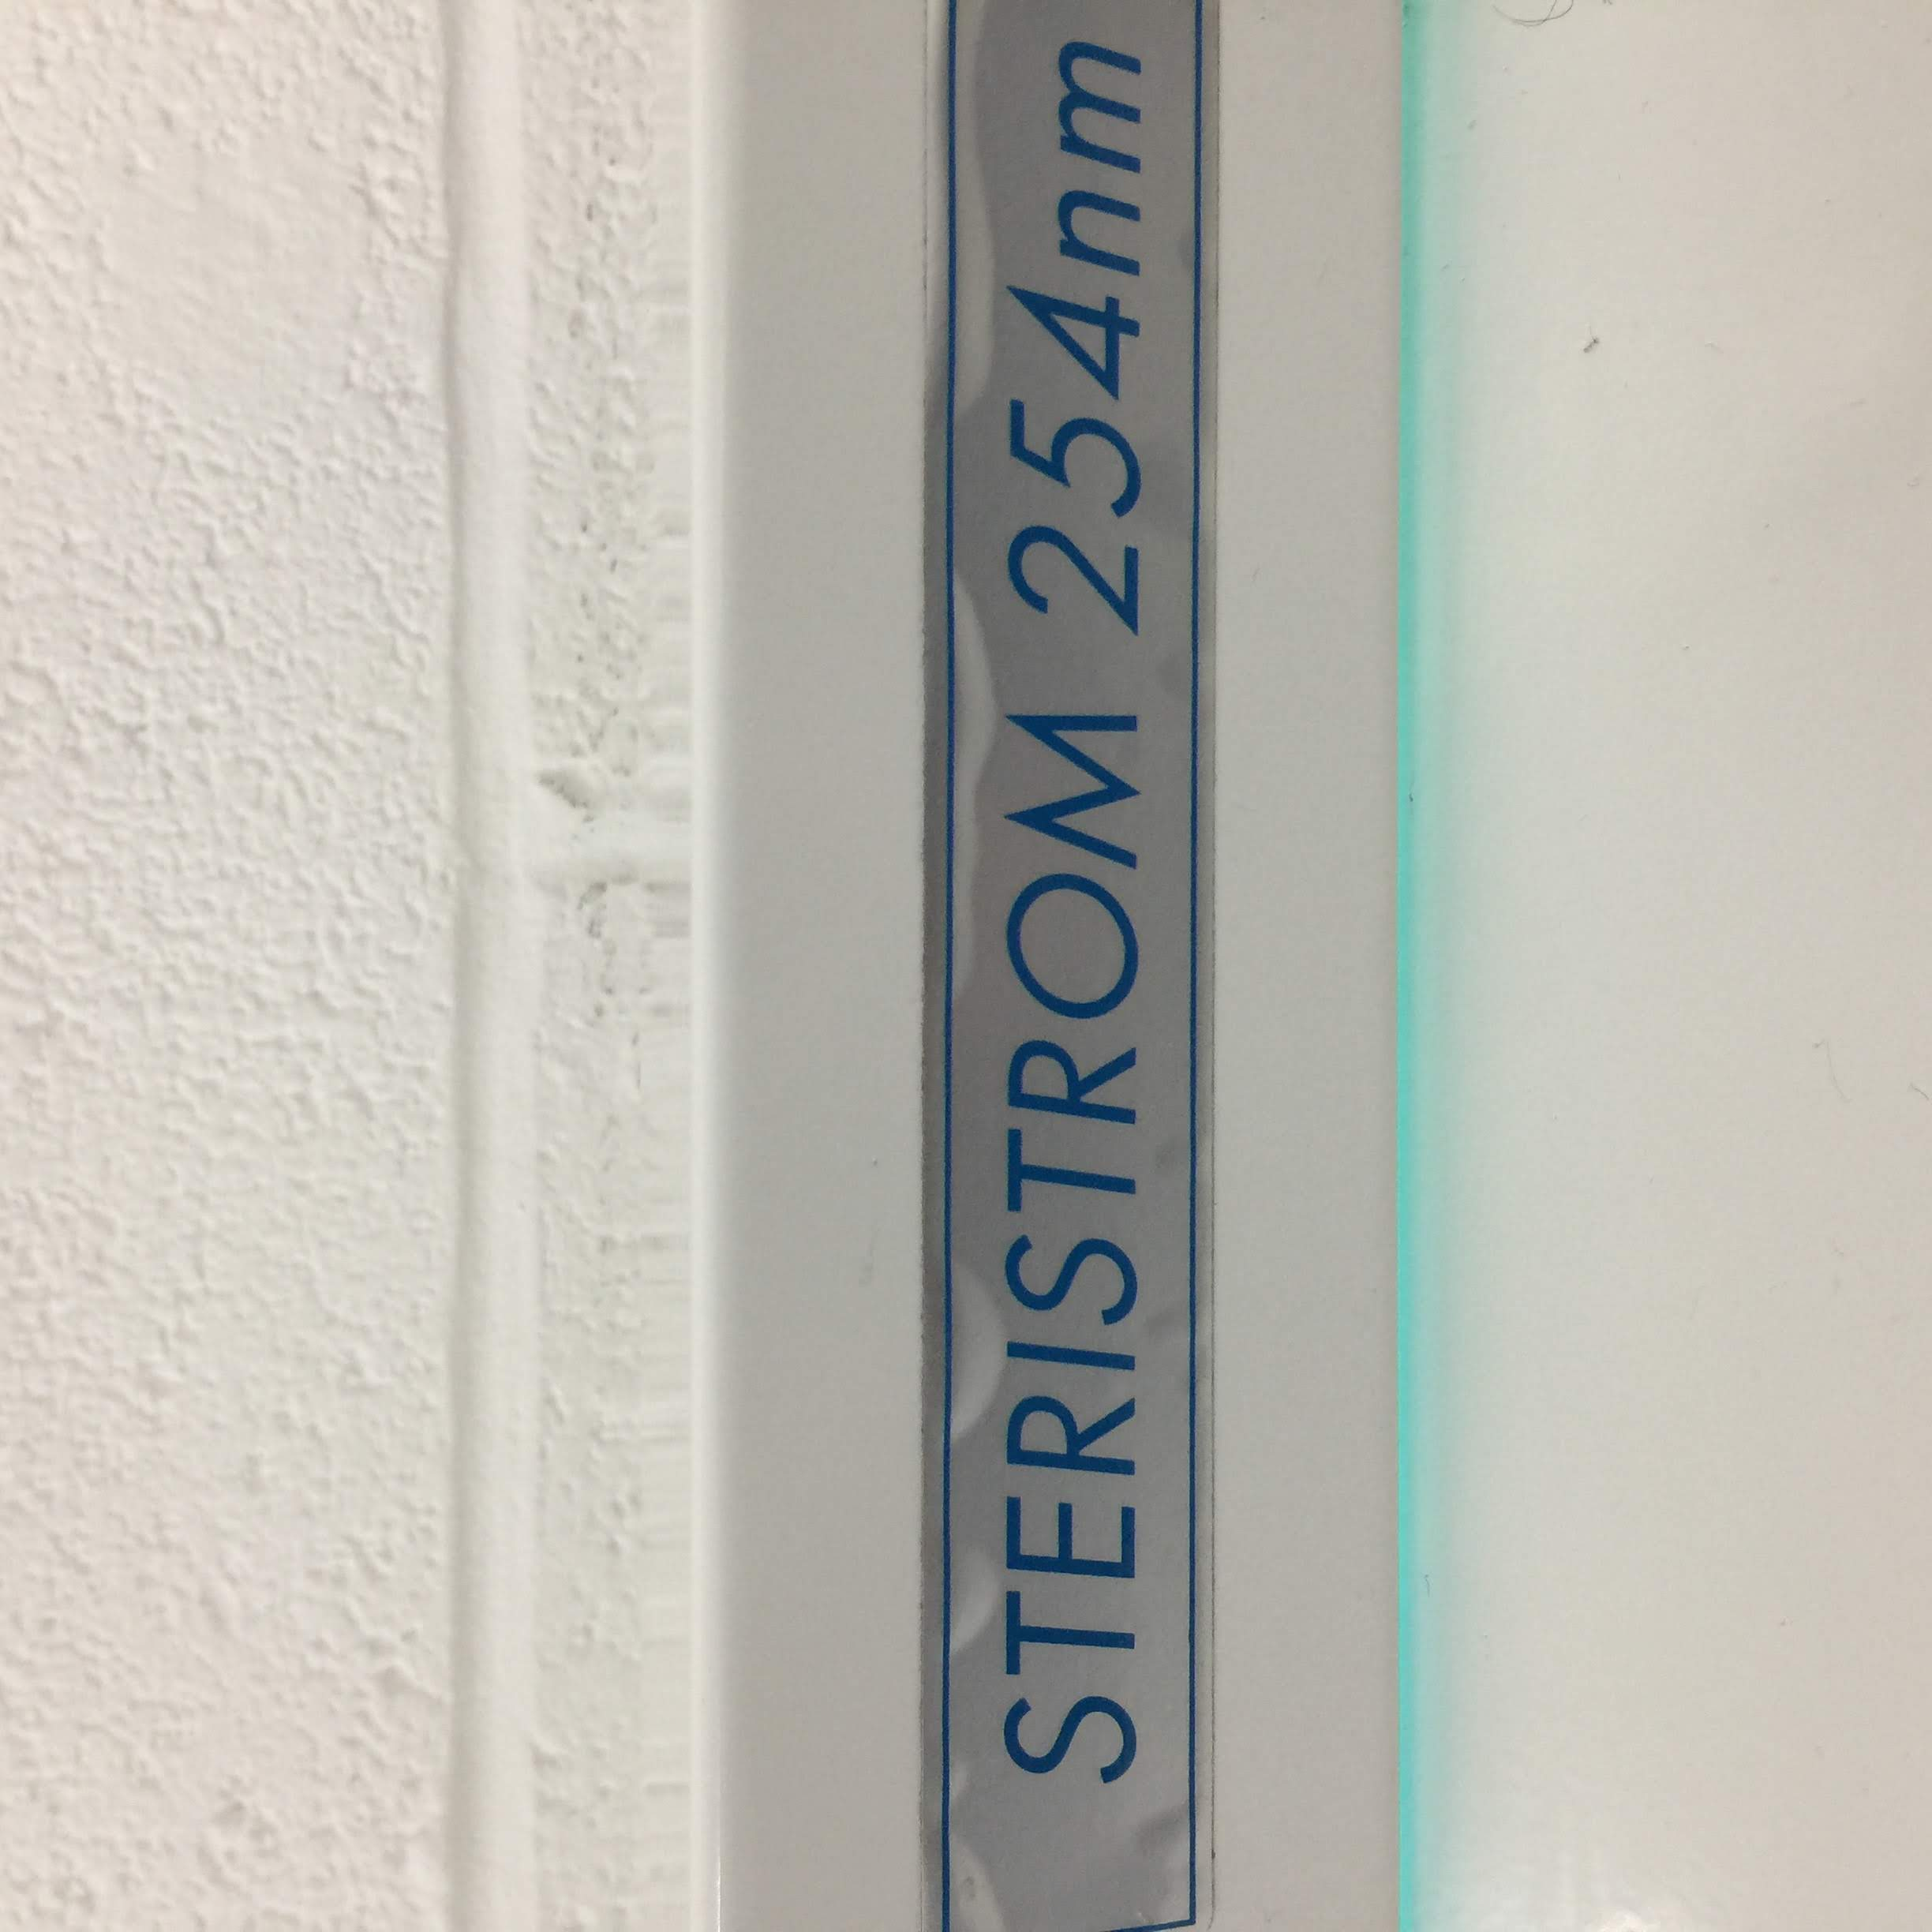 UV Systems Steristrom 254nm UV System